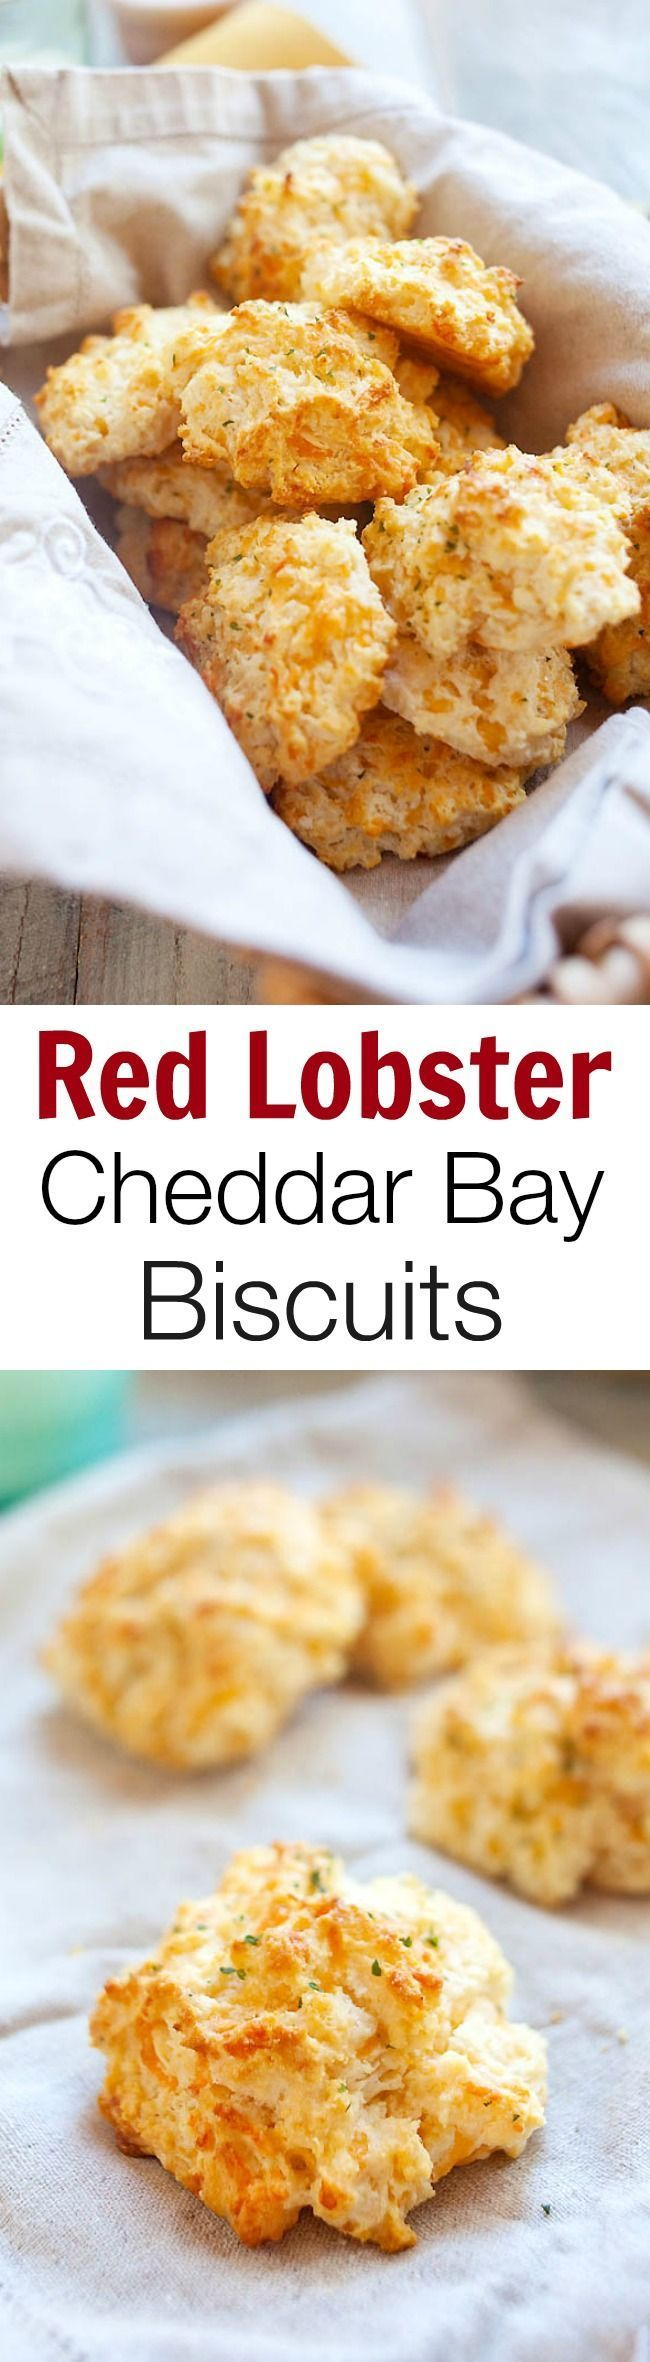 Red Lobster Cheddar Bay Biscuits | Recipe | Best biscuit recipe ...